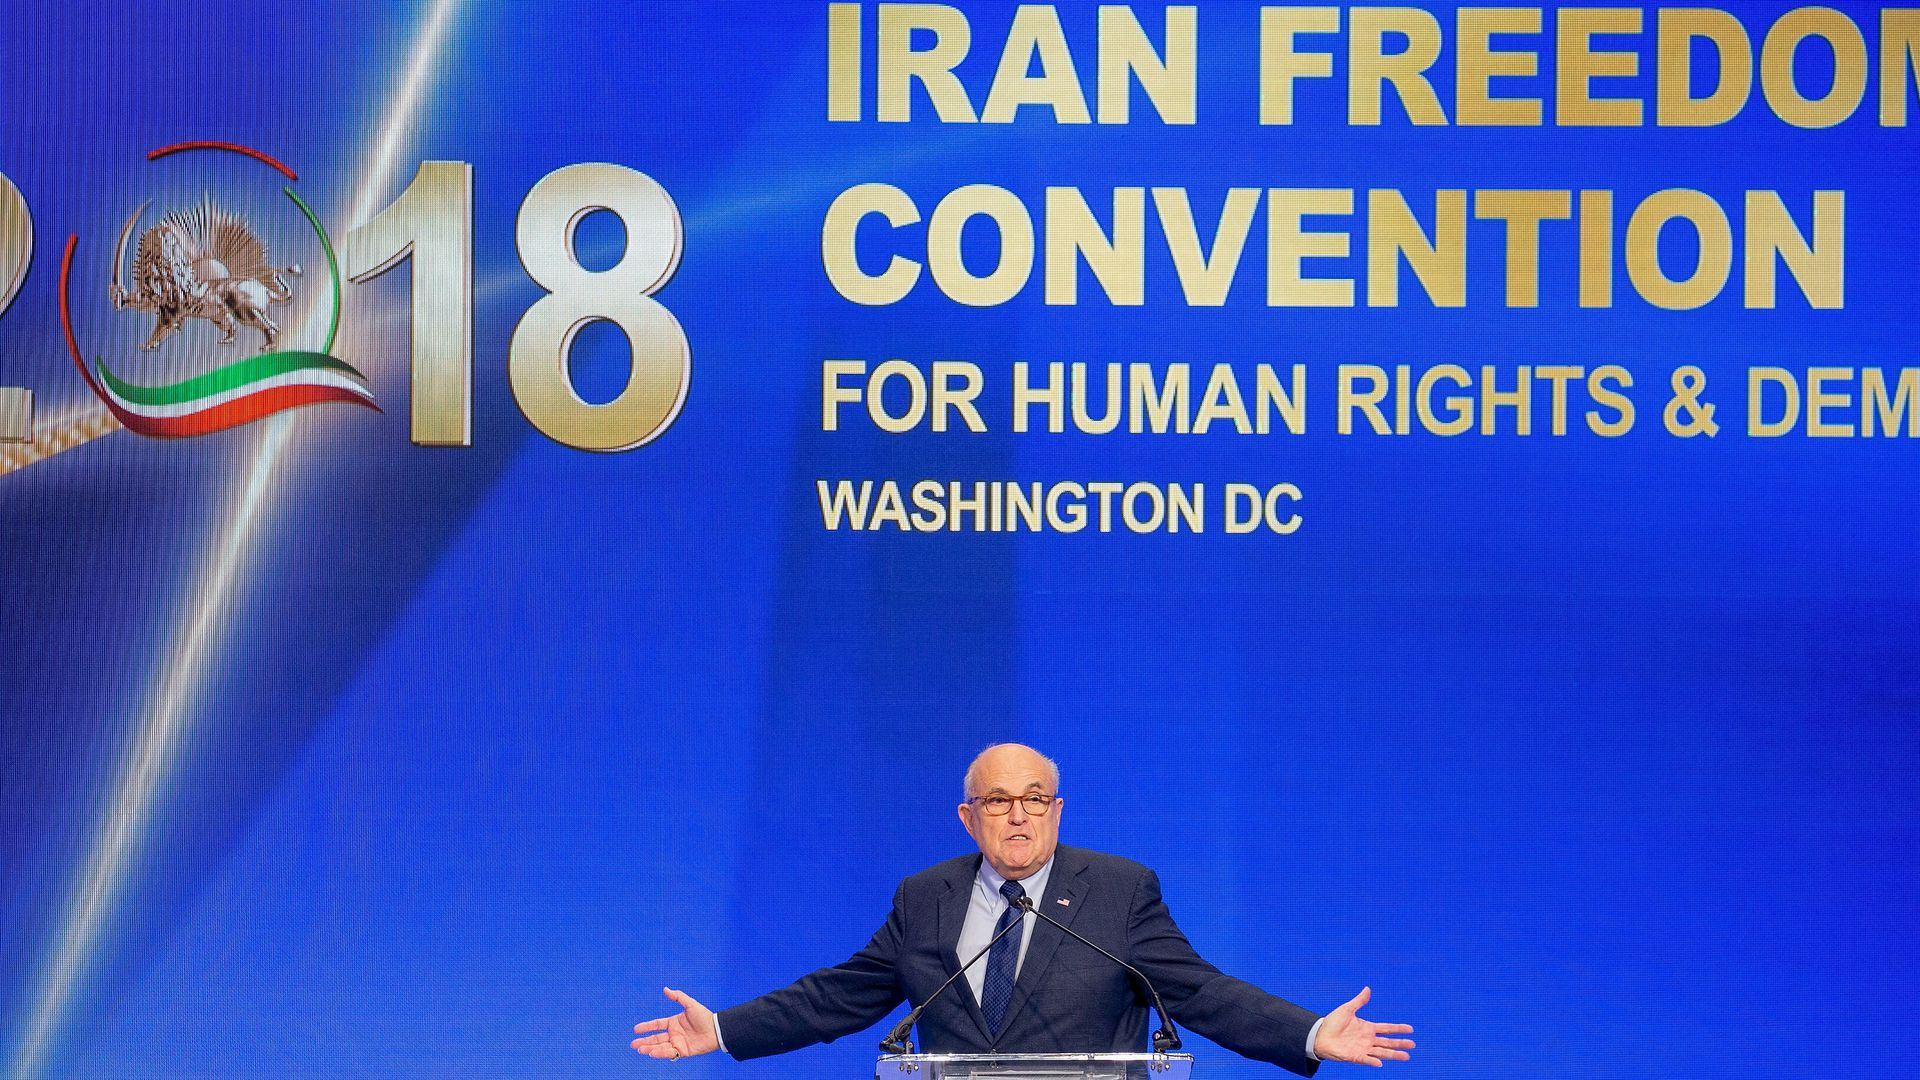 Rudy Giuliani speaks at the Conference on Iran on May 5, 2018 in Washington, DC.